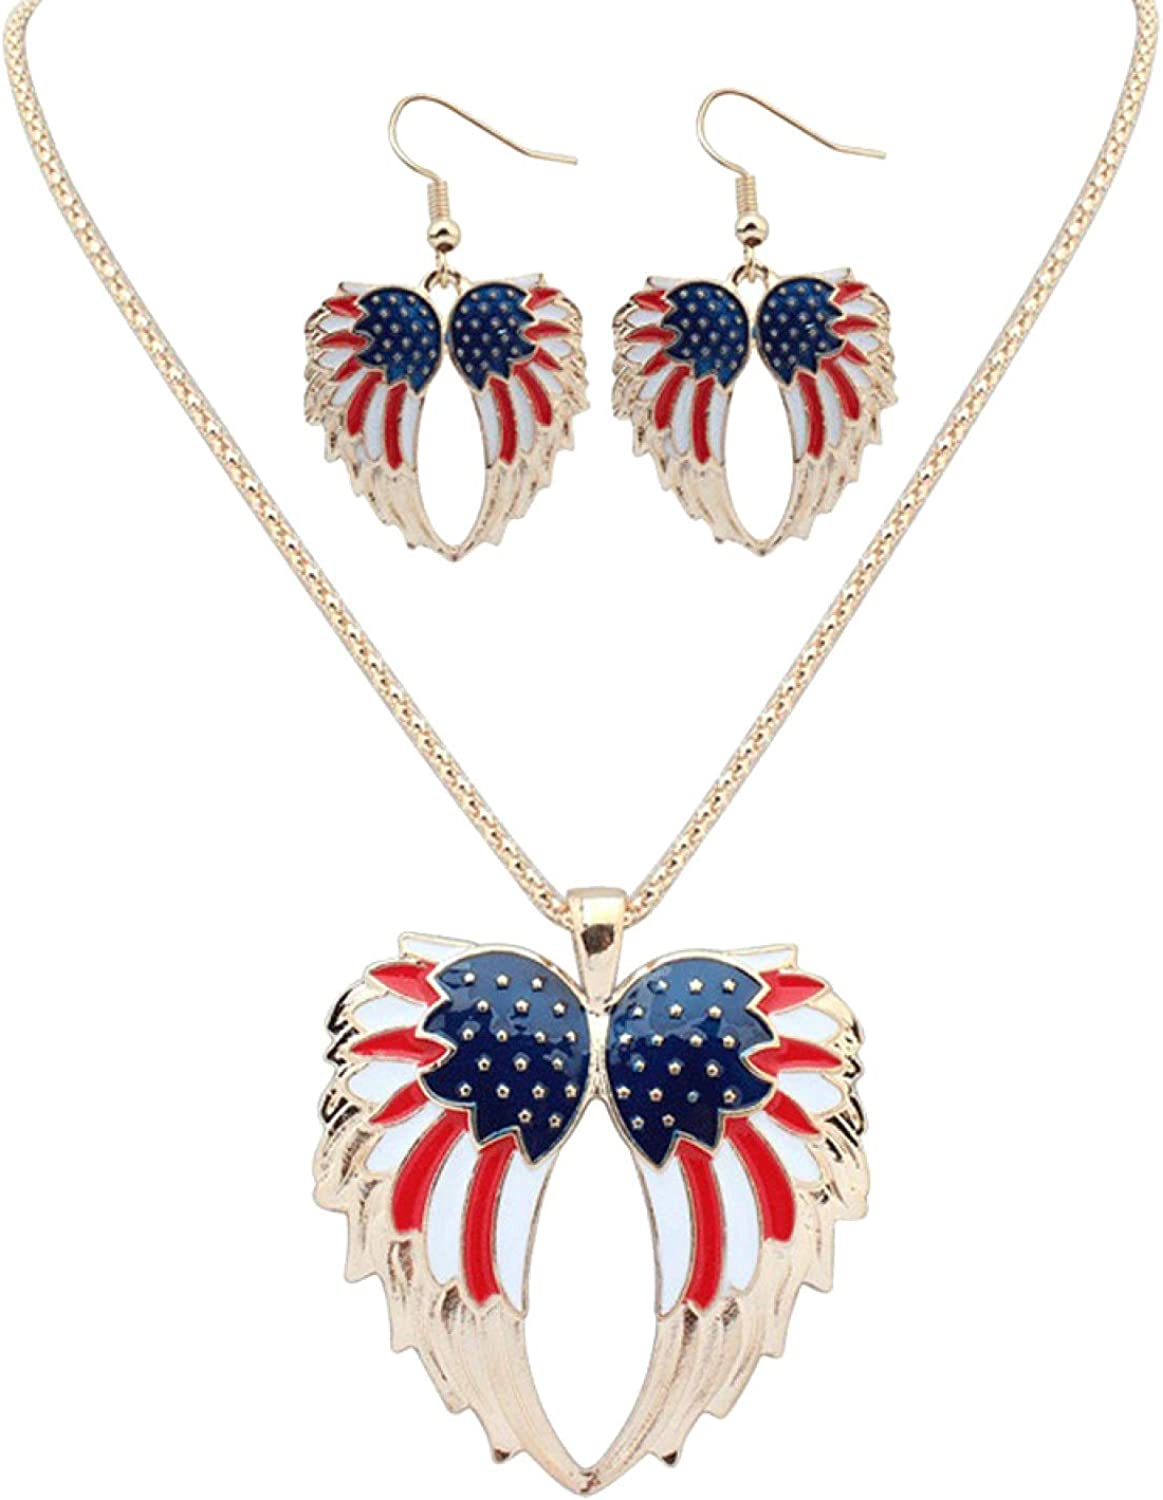 Jewelry Sets for Women,Independence Day USA Flag Patriotic Wings Women Necklace Earrings Jewelry Set